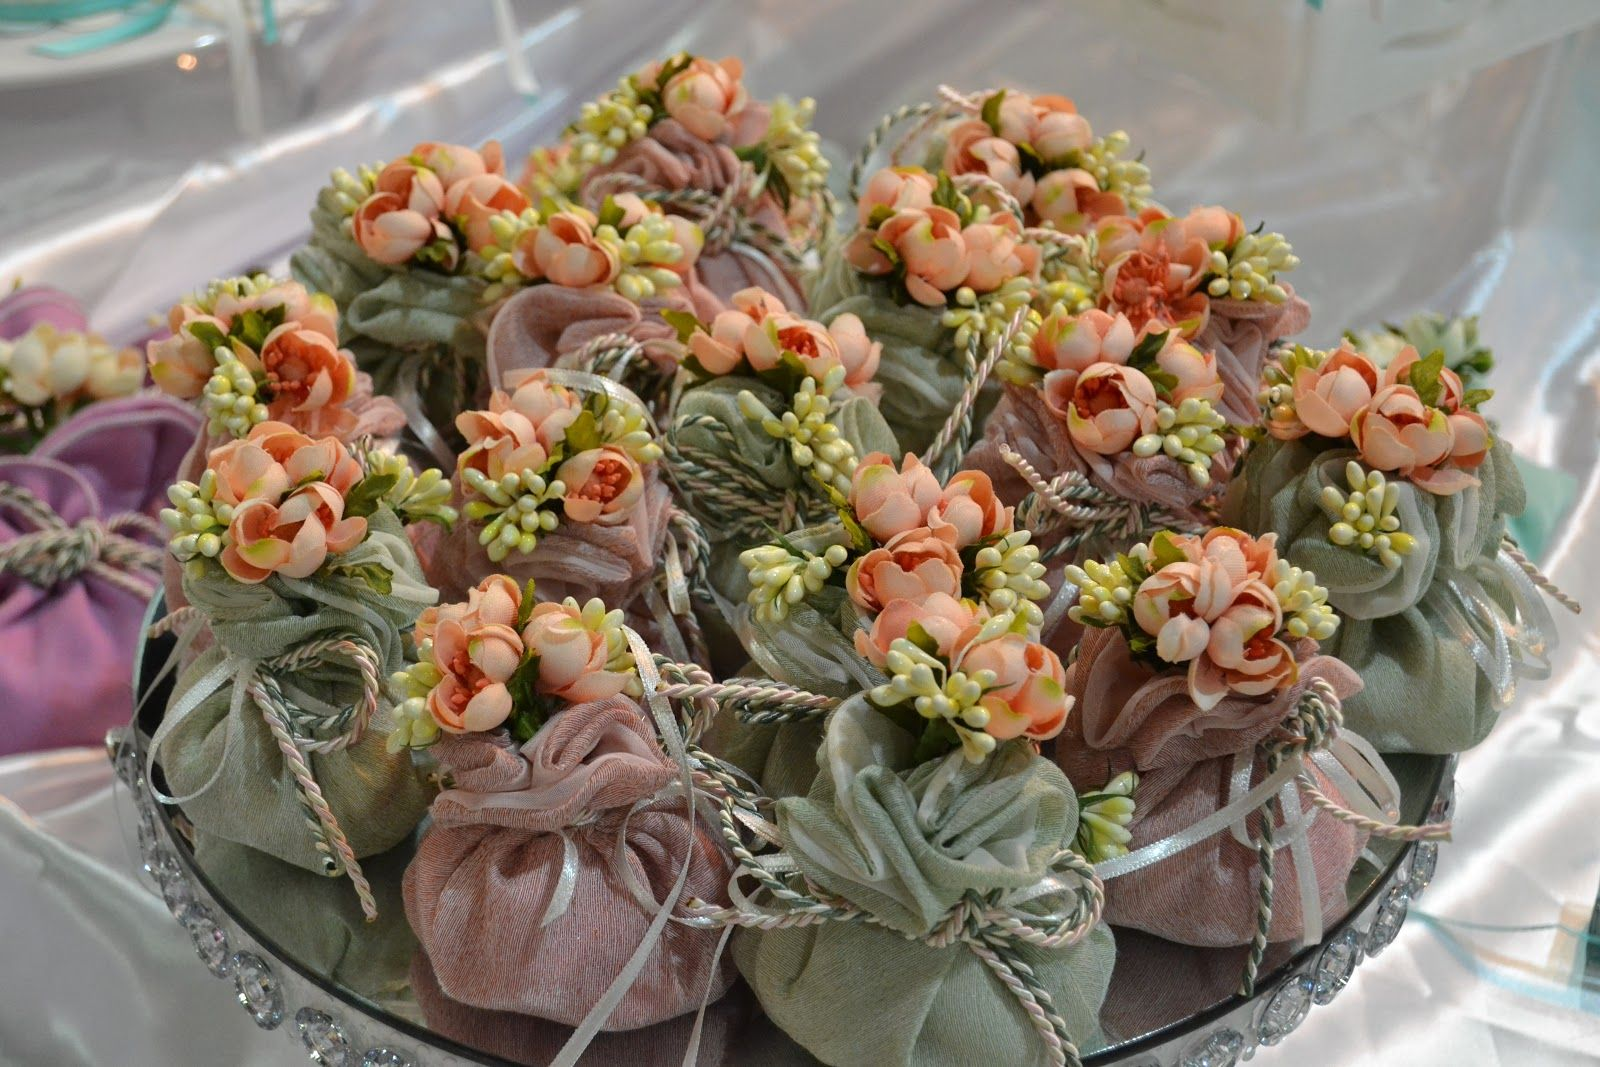 If you want to surprise your loved ones with the beautiful flowers if you want to surprise your loved ones with the beautiful flowers you can get izmirmasajfo